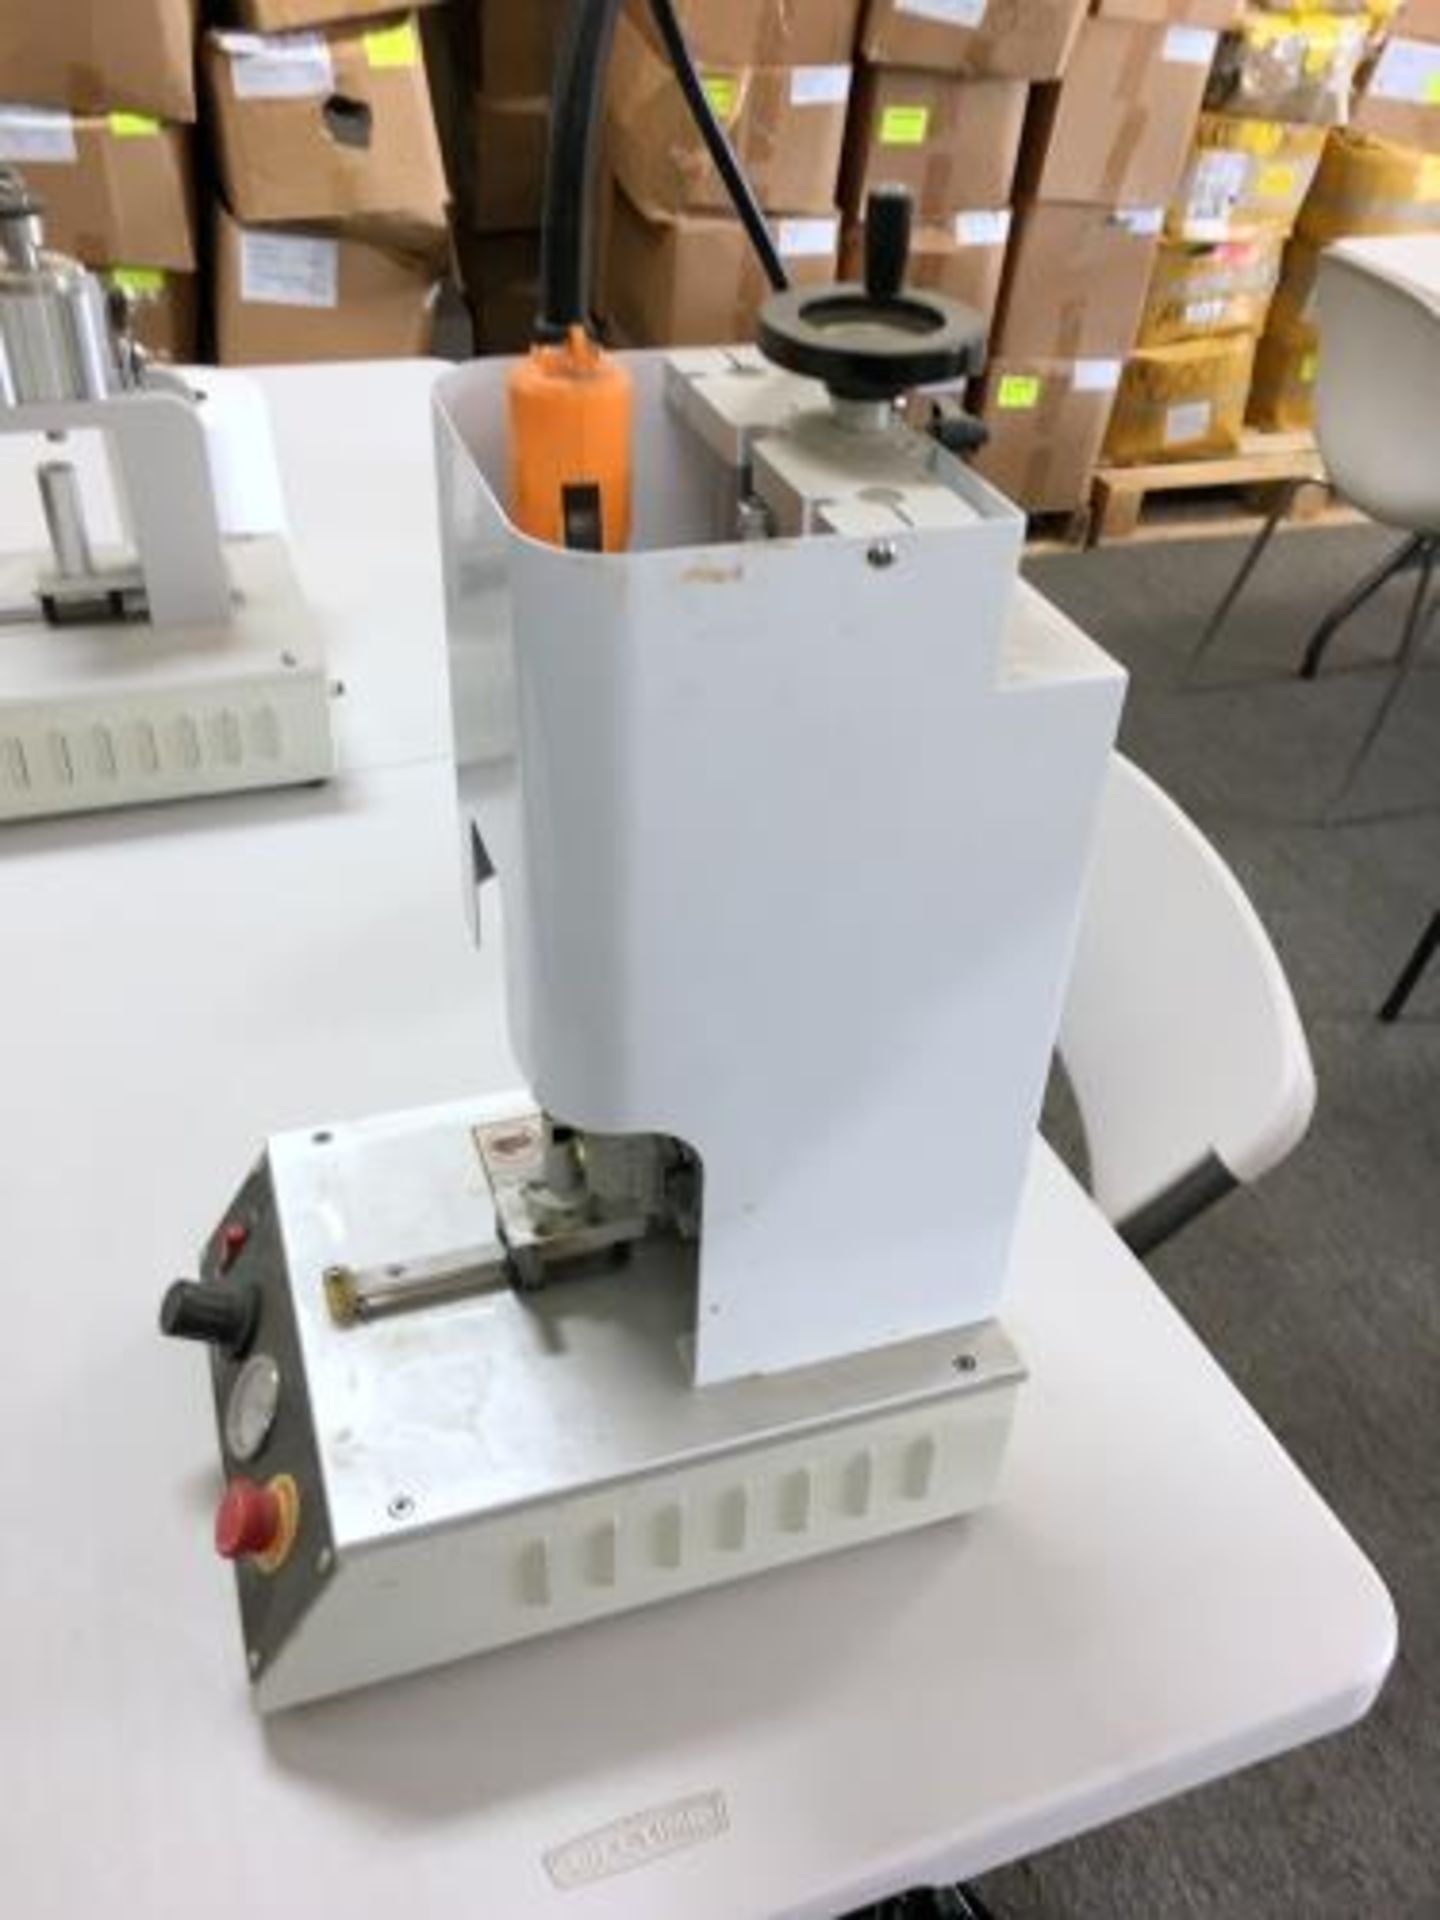 Used-Lot of (2) Pnuematic Screw Capping Machines Adjustable Cartridge Size/Torque. 3K Cartridges/run - Image 4 of 4